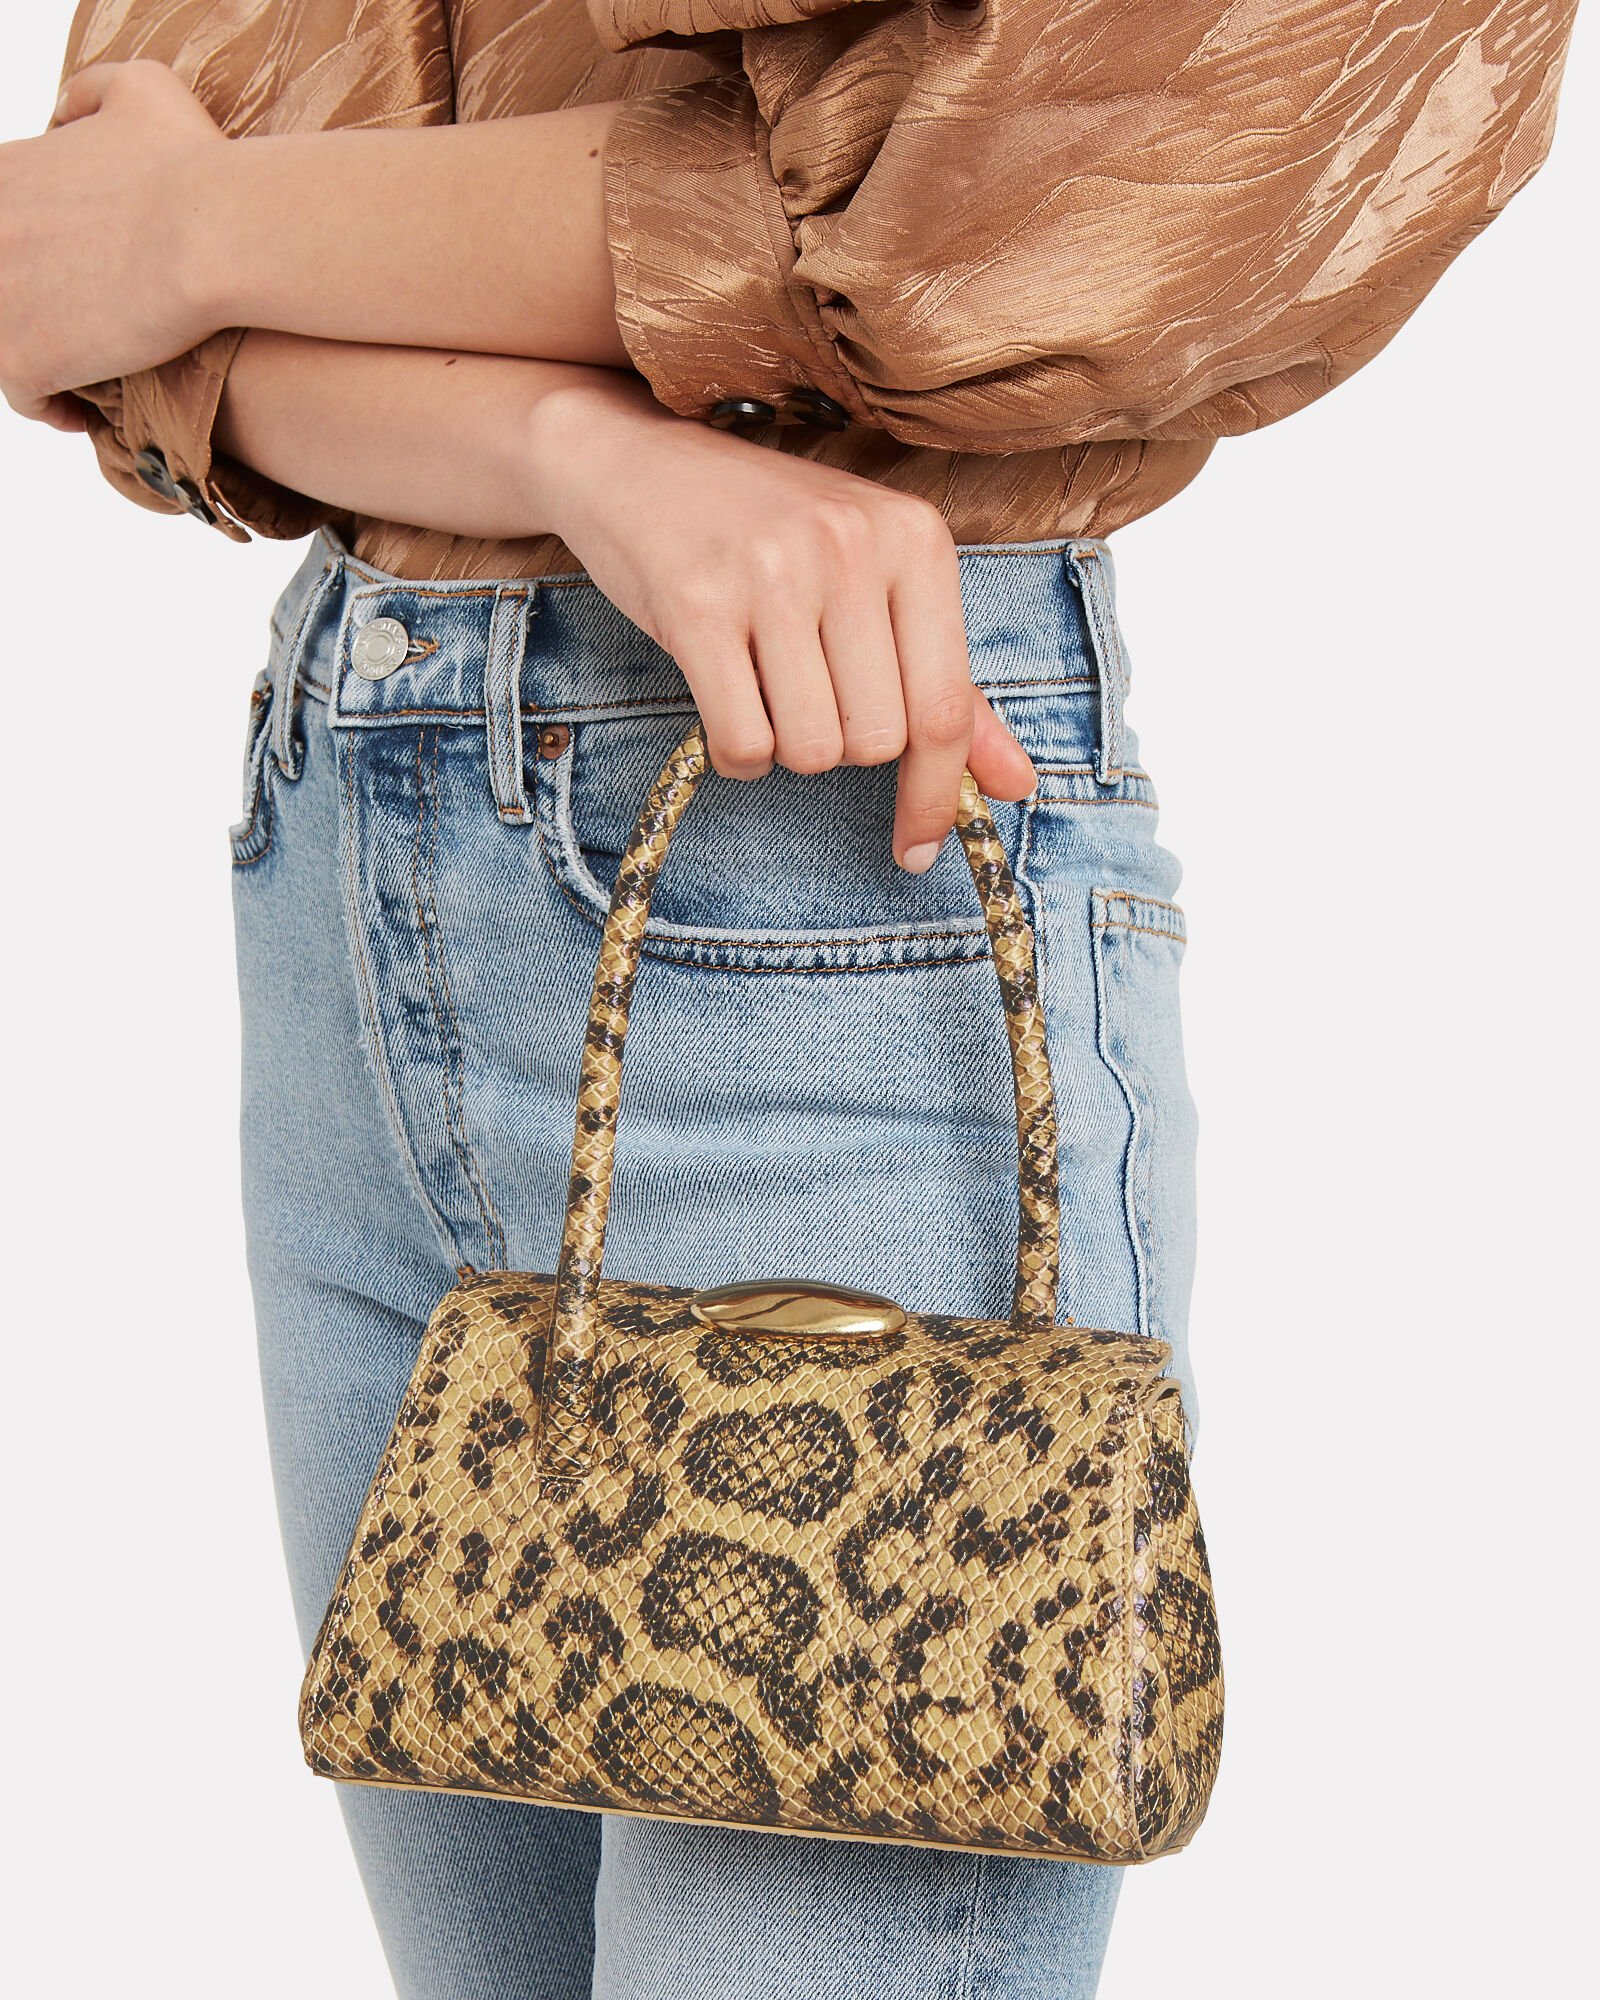 Baby Boss Snake-Embossed Leather Bag, TAN/PYTHON, hi-res